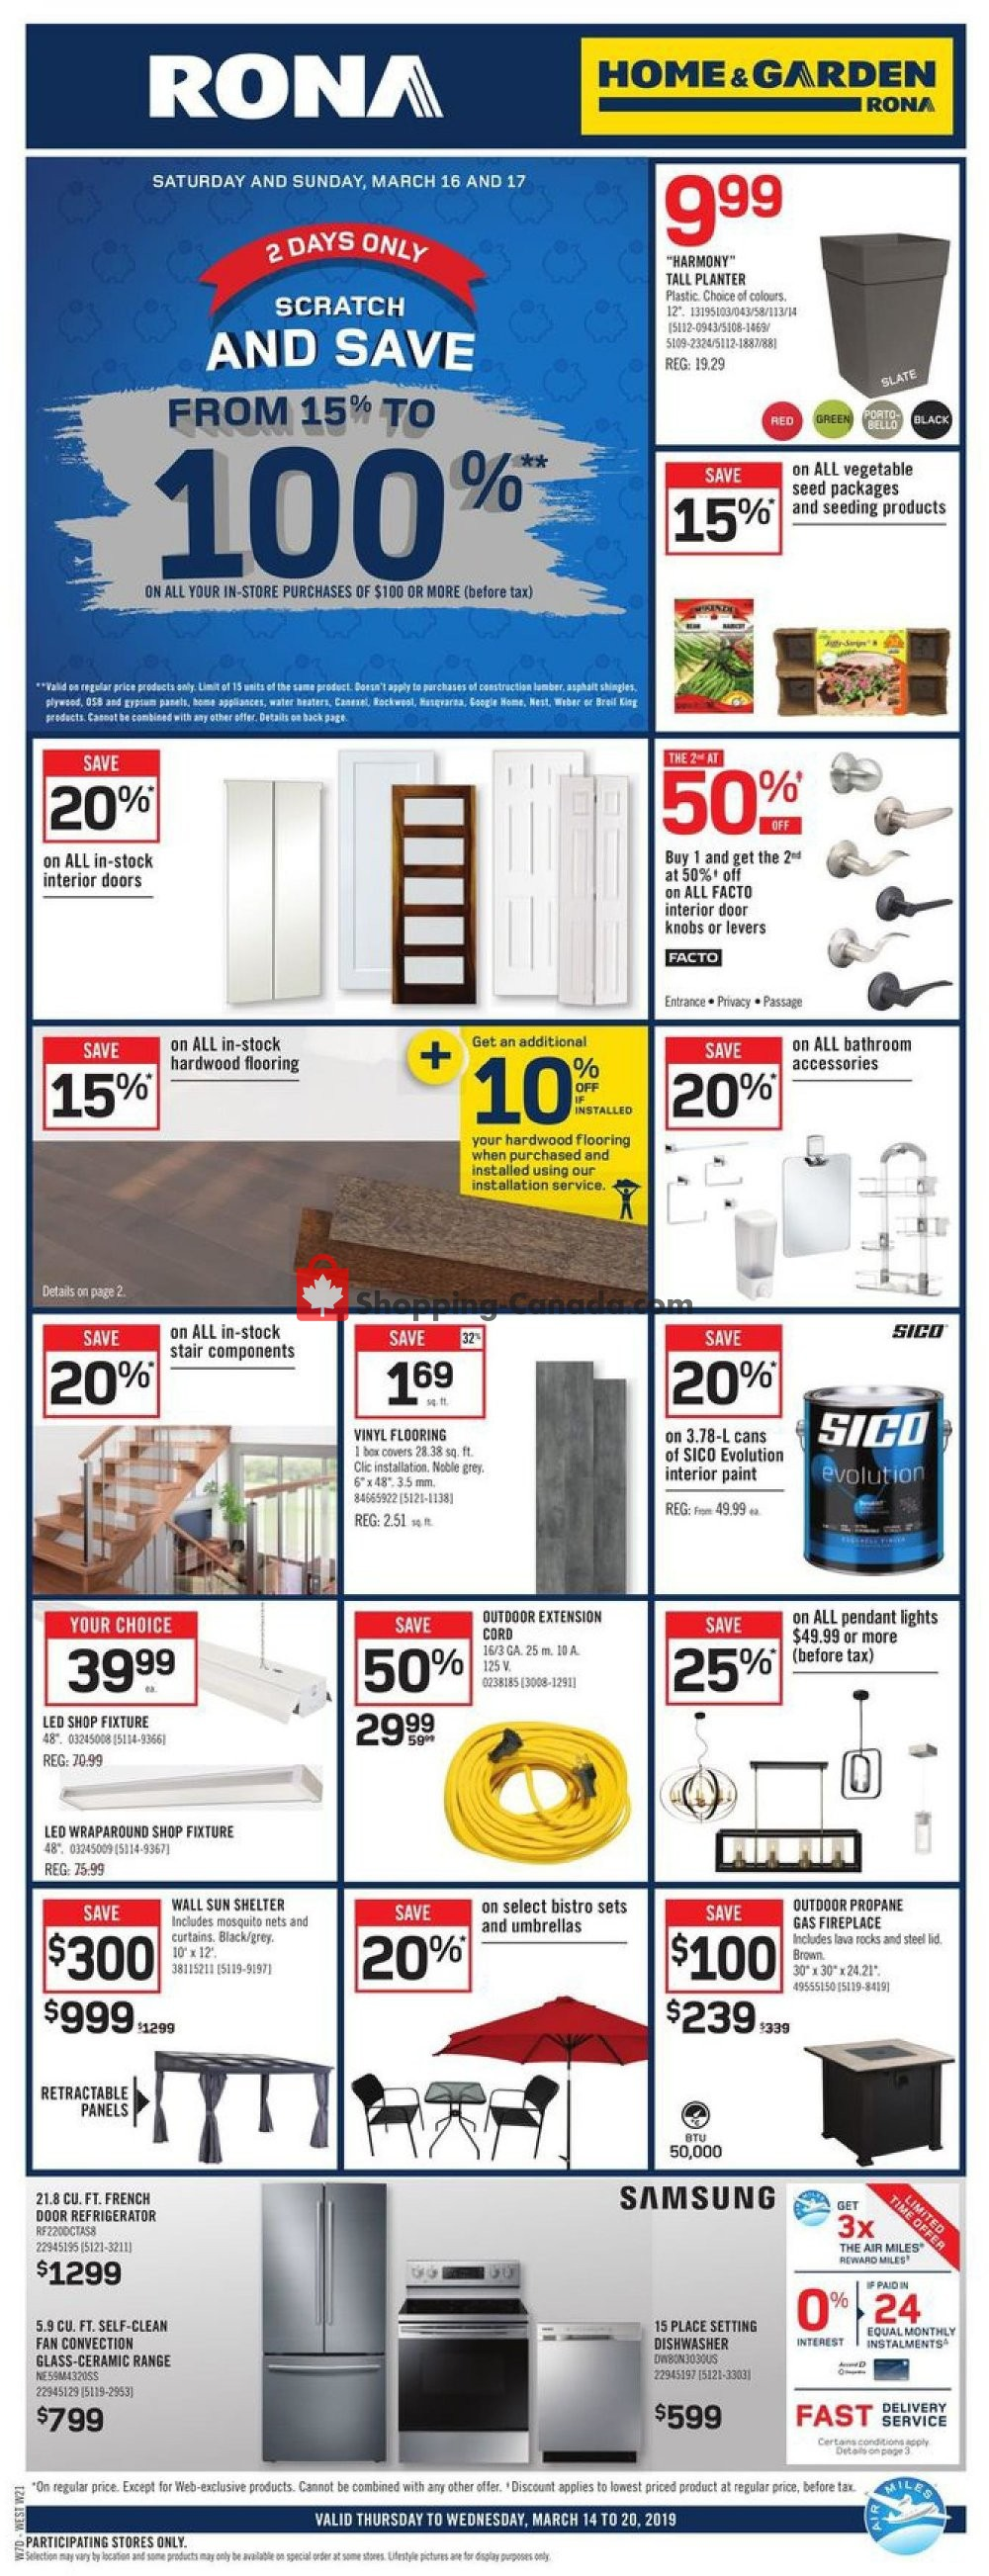 Flyer Rona Canada - from Thursday March 14, 2019 to Wednesday March 20, 2019